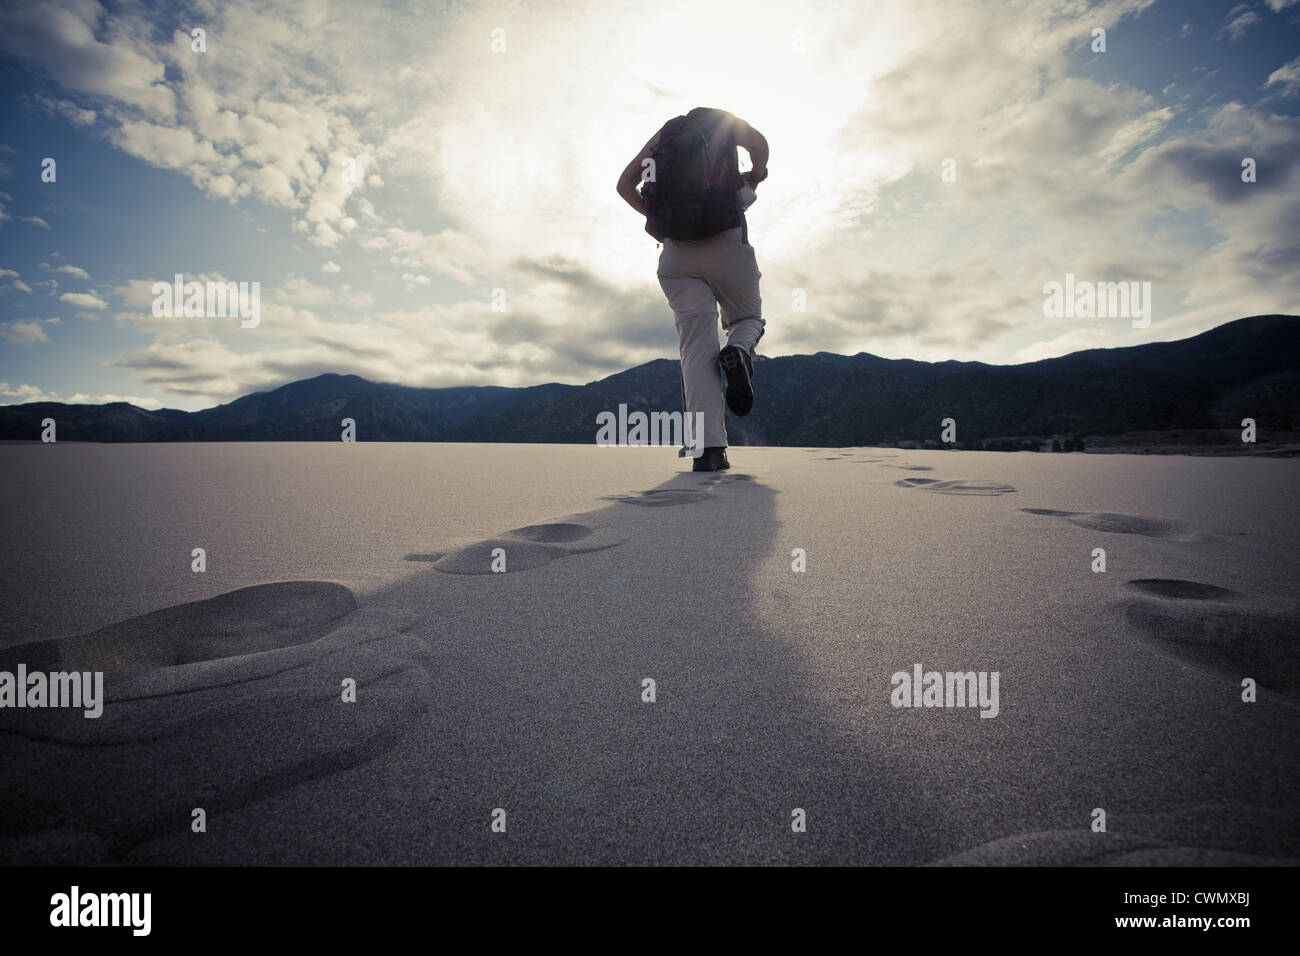 USA, Colorado, Great Sand Dunes National Park, Low angle view of tourist walking - Stock Image